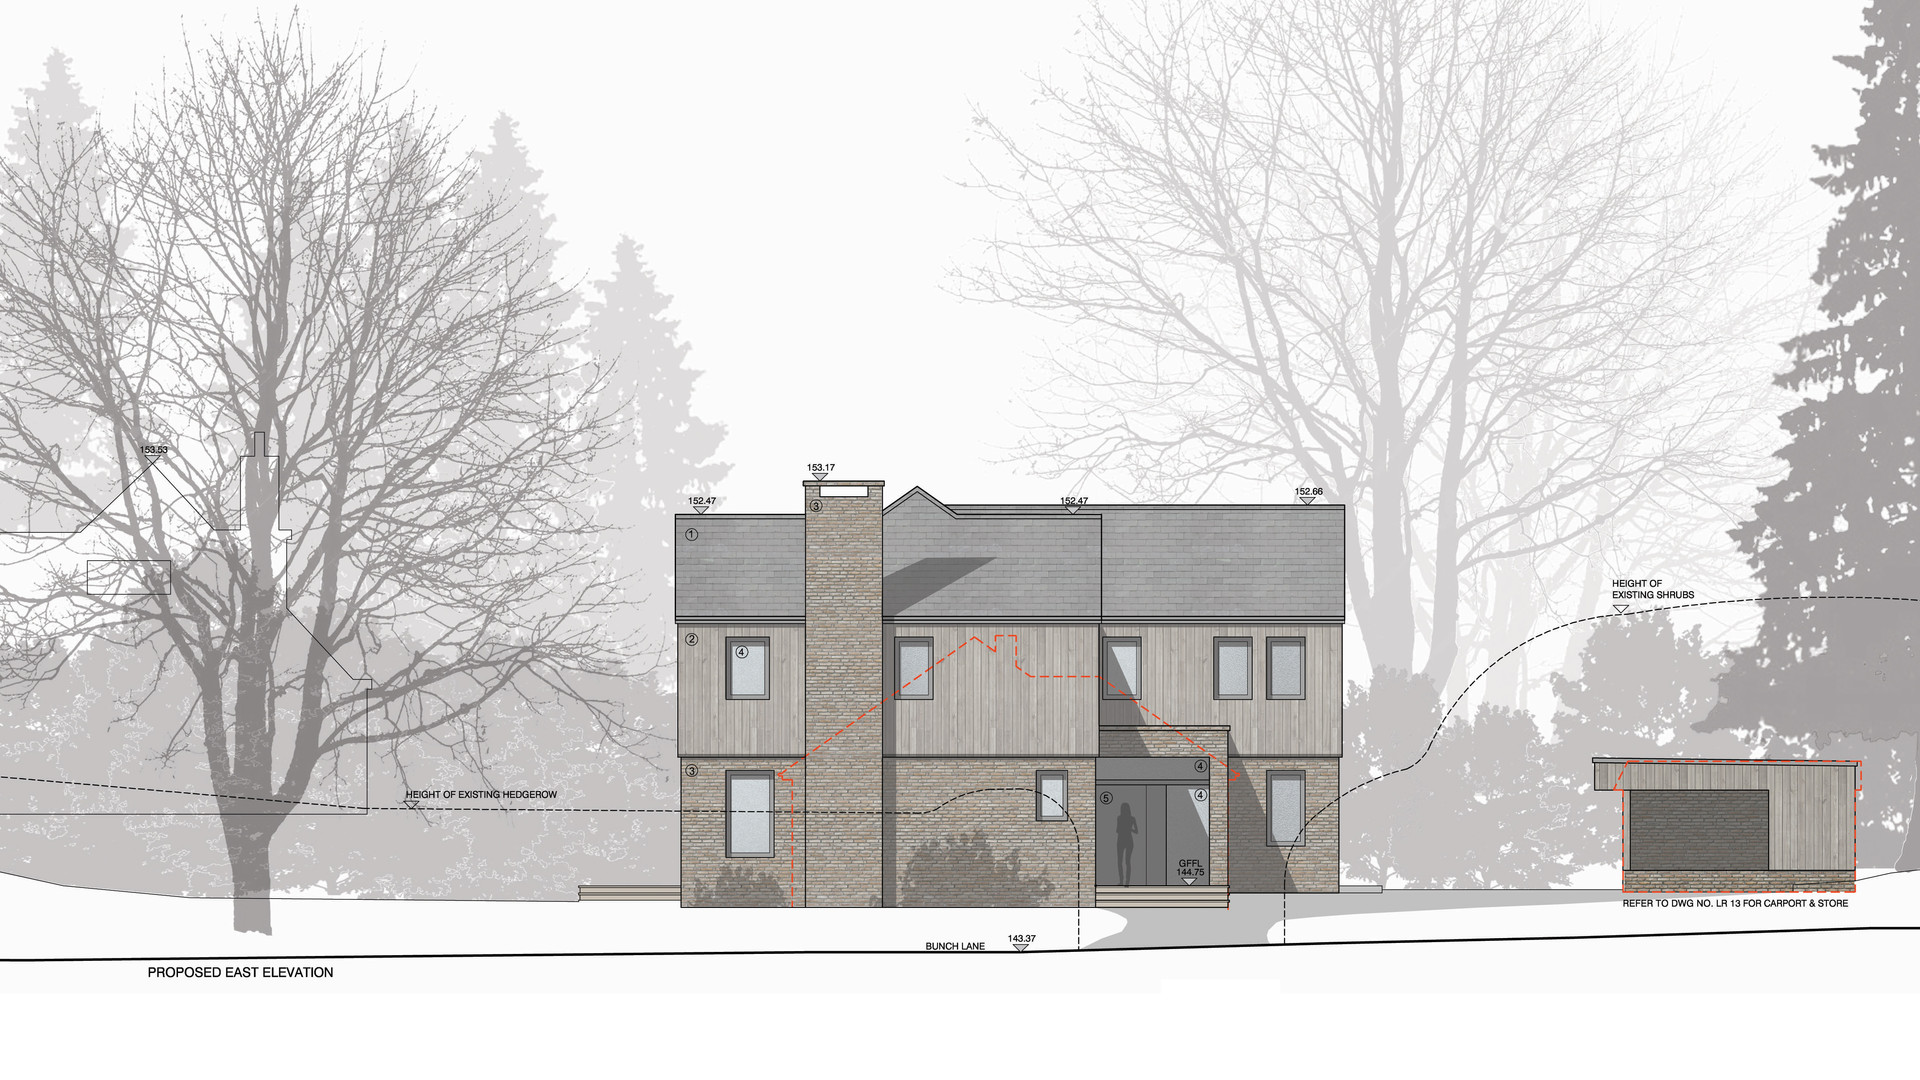 Haslemere new build house elevation drawing